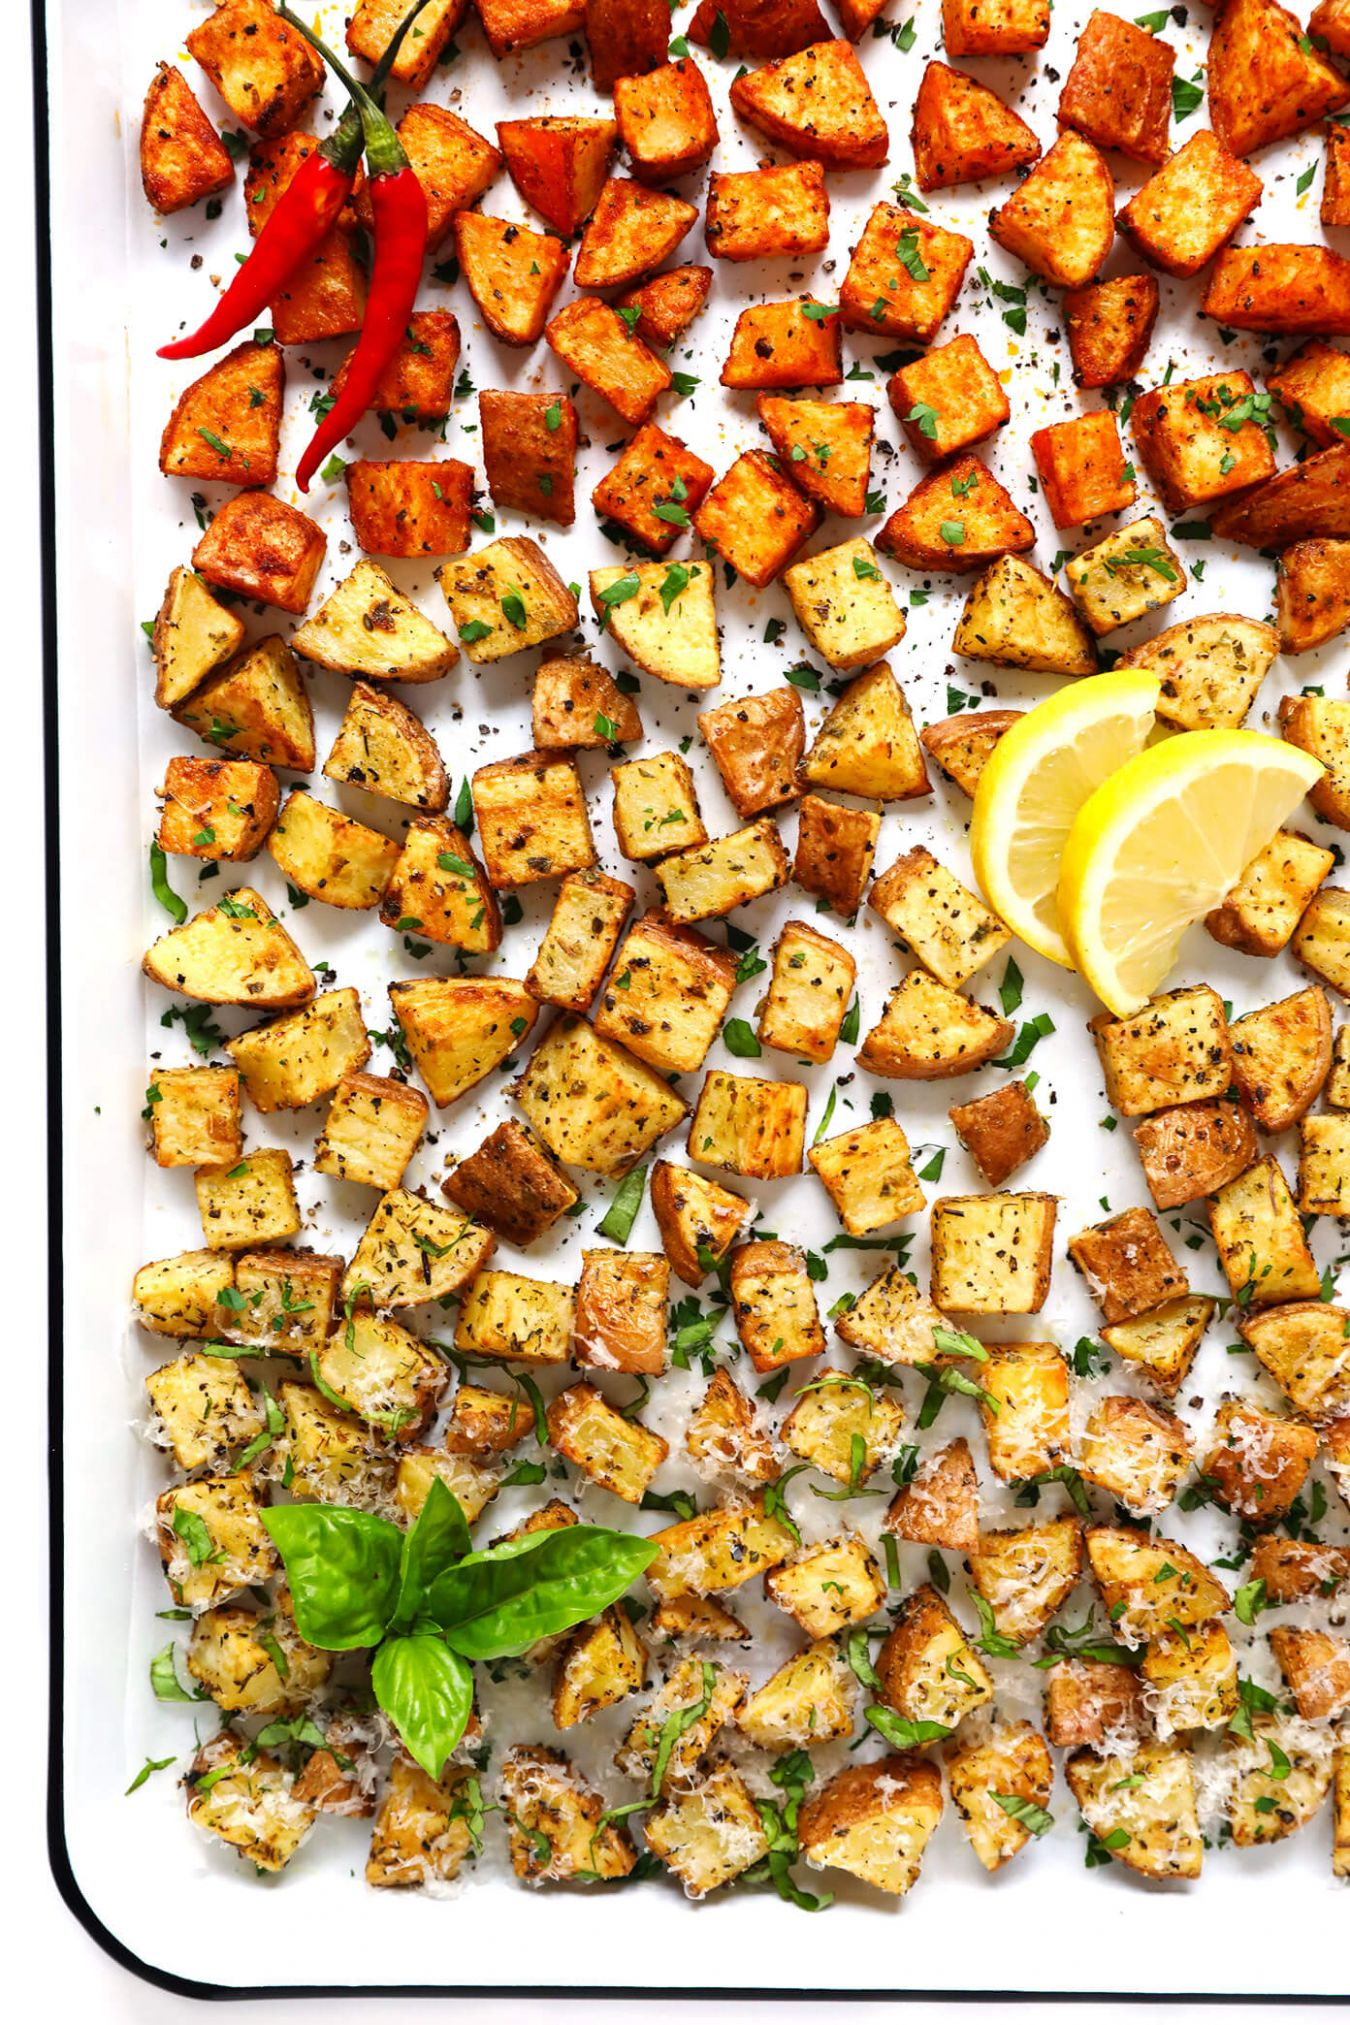 Crispy Roasted Potatoes (11 Ways!)